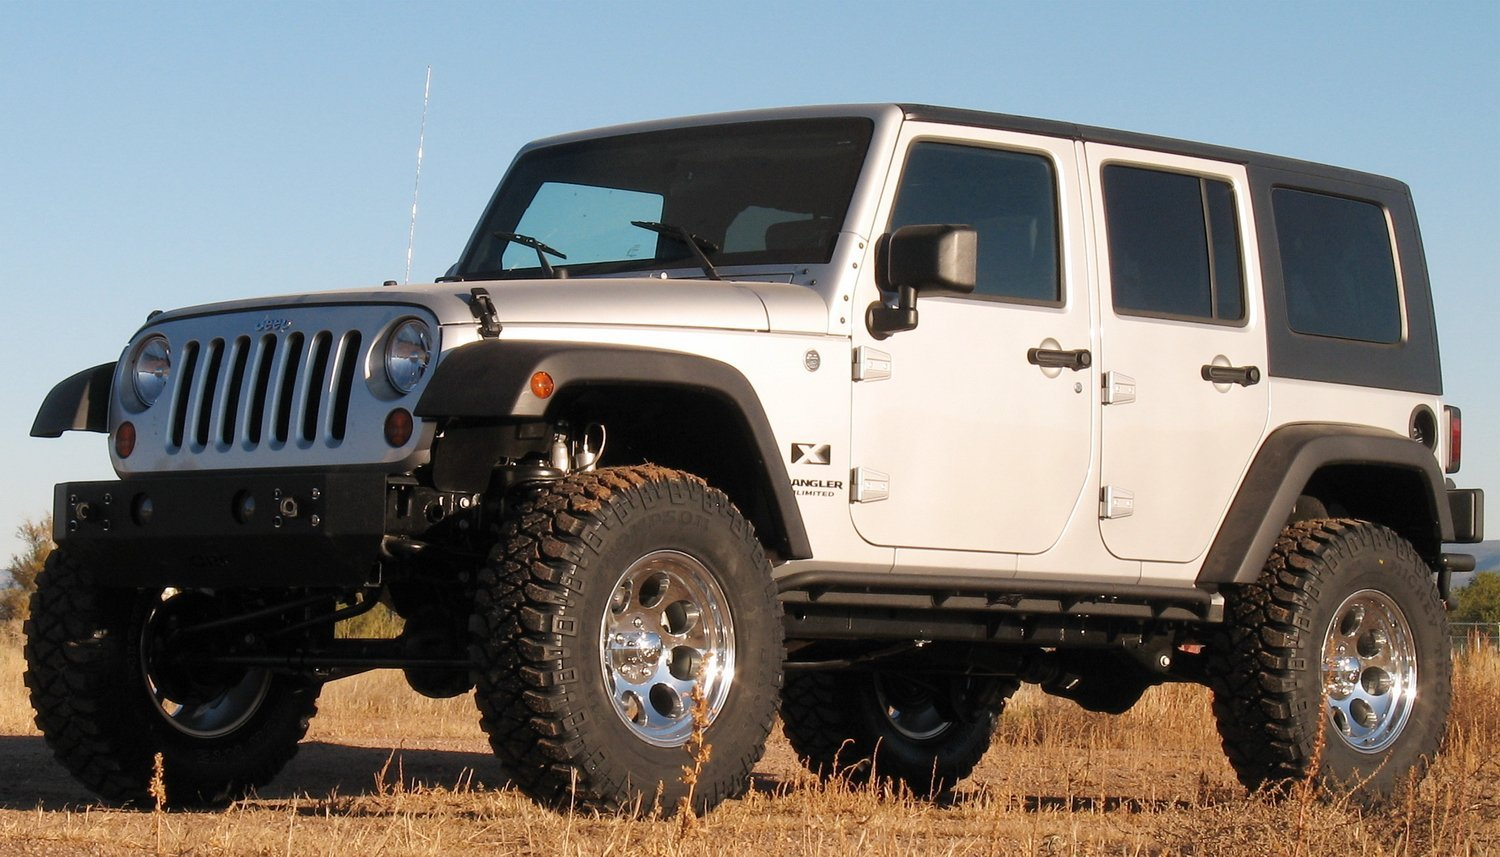 9 Body Lift Kits Reviewed That Will Give You Maximum Clearance for Cheap